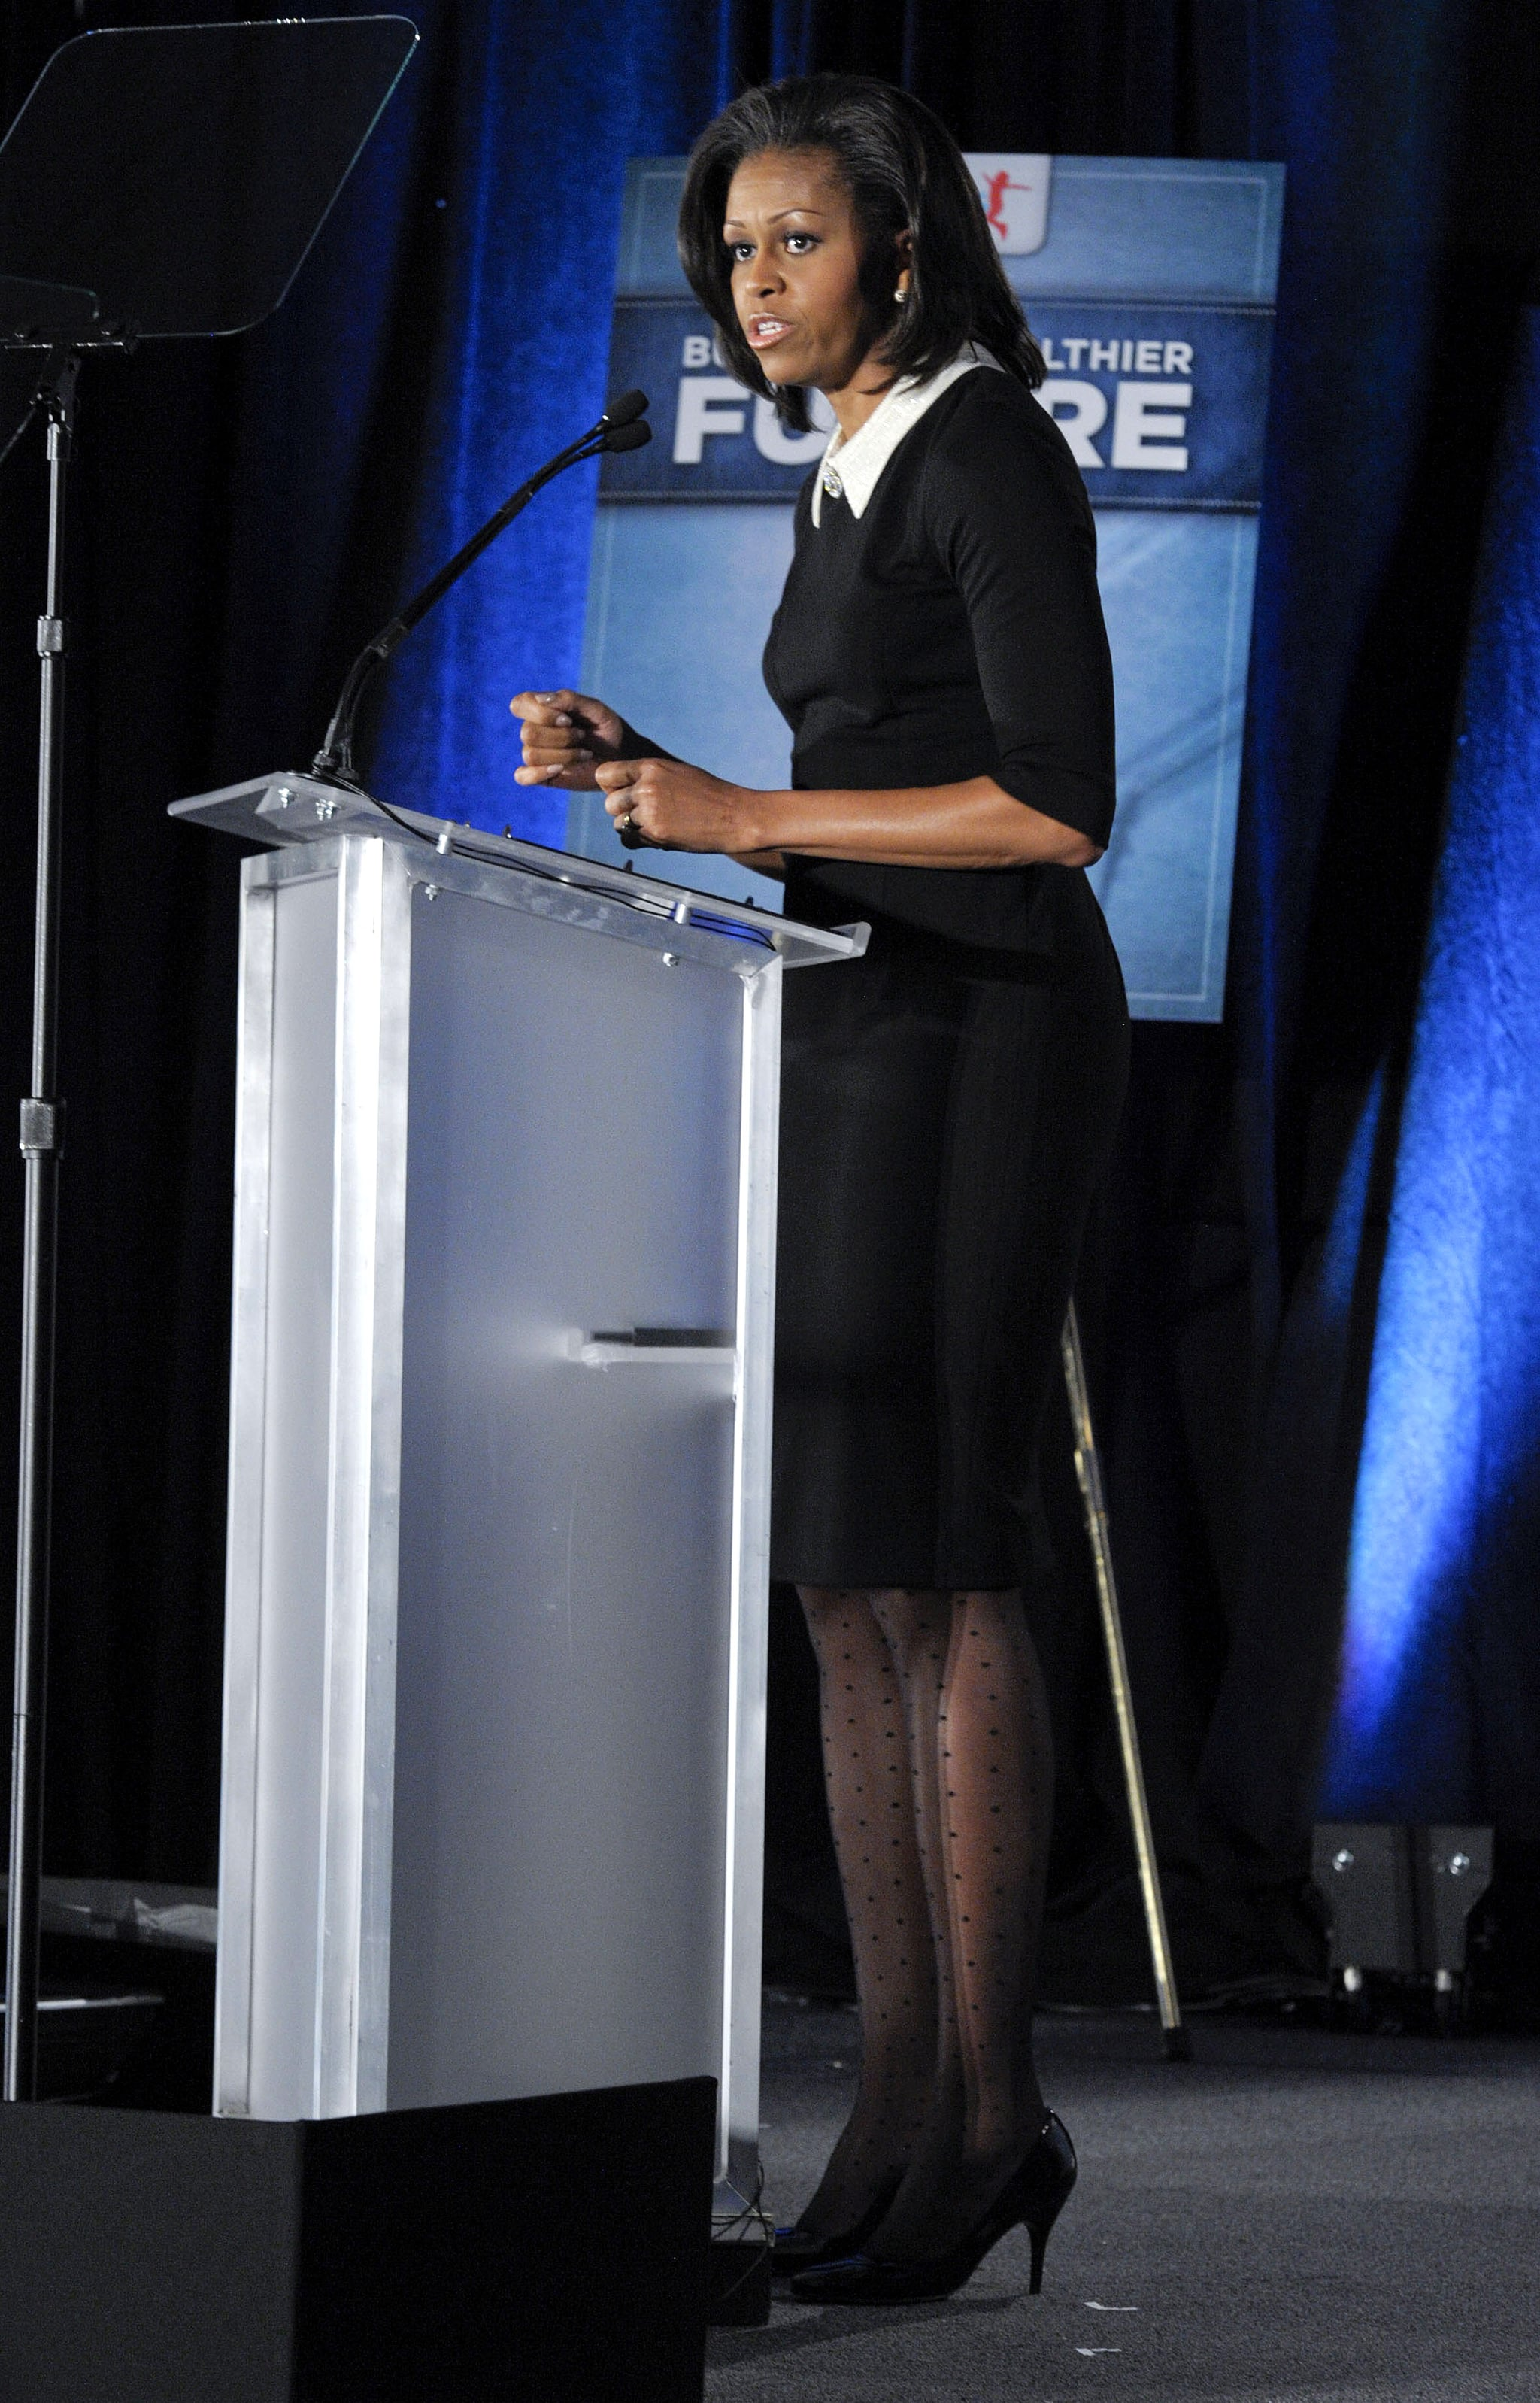 Michelle looked professional and superchic in this collared Jason Wu dress. The polka-dot tights were an added accessory bonus!